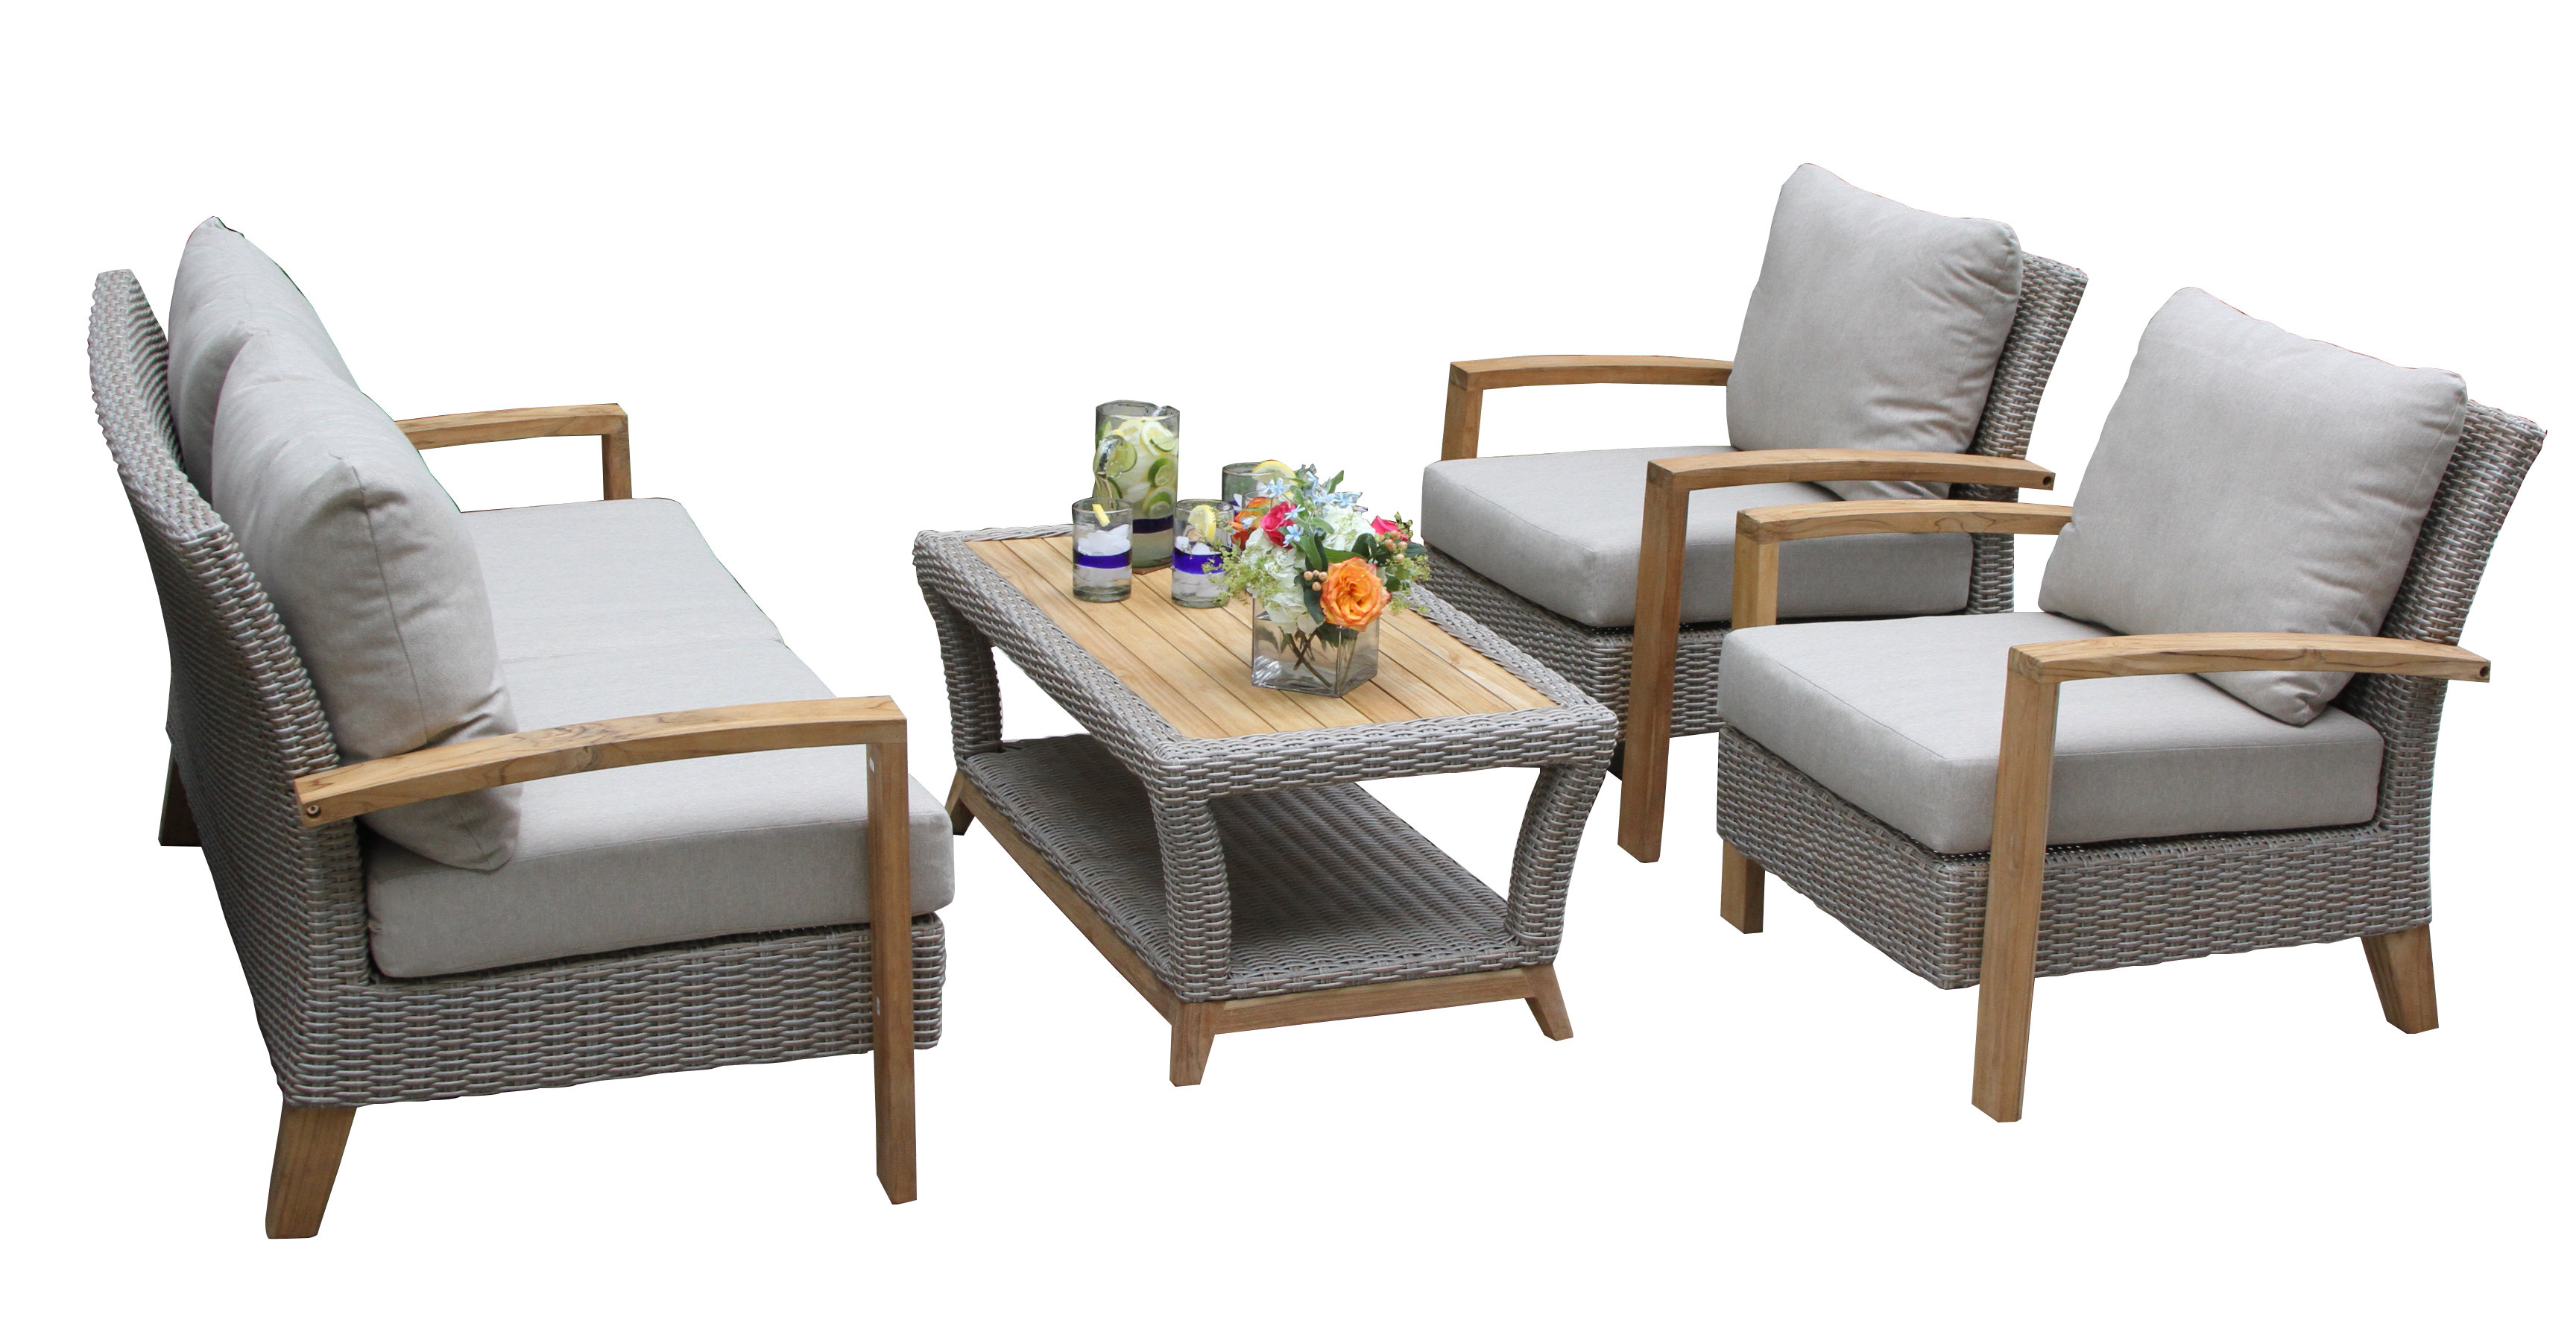 Popular Elaina Cantilever Umbrellas Within Dillard 4 Piece Rattan Sofa Seating Group With Cushions (View 19 of 20)